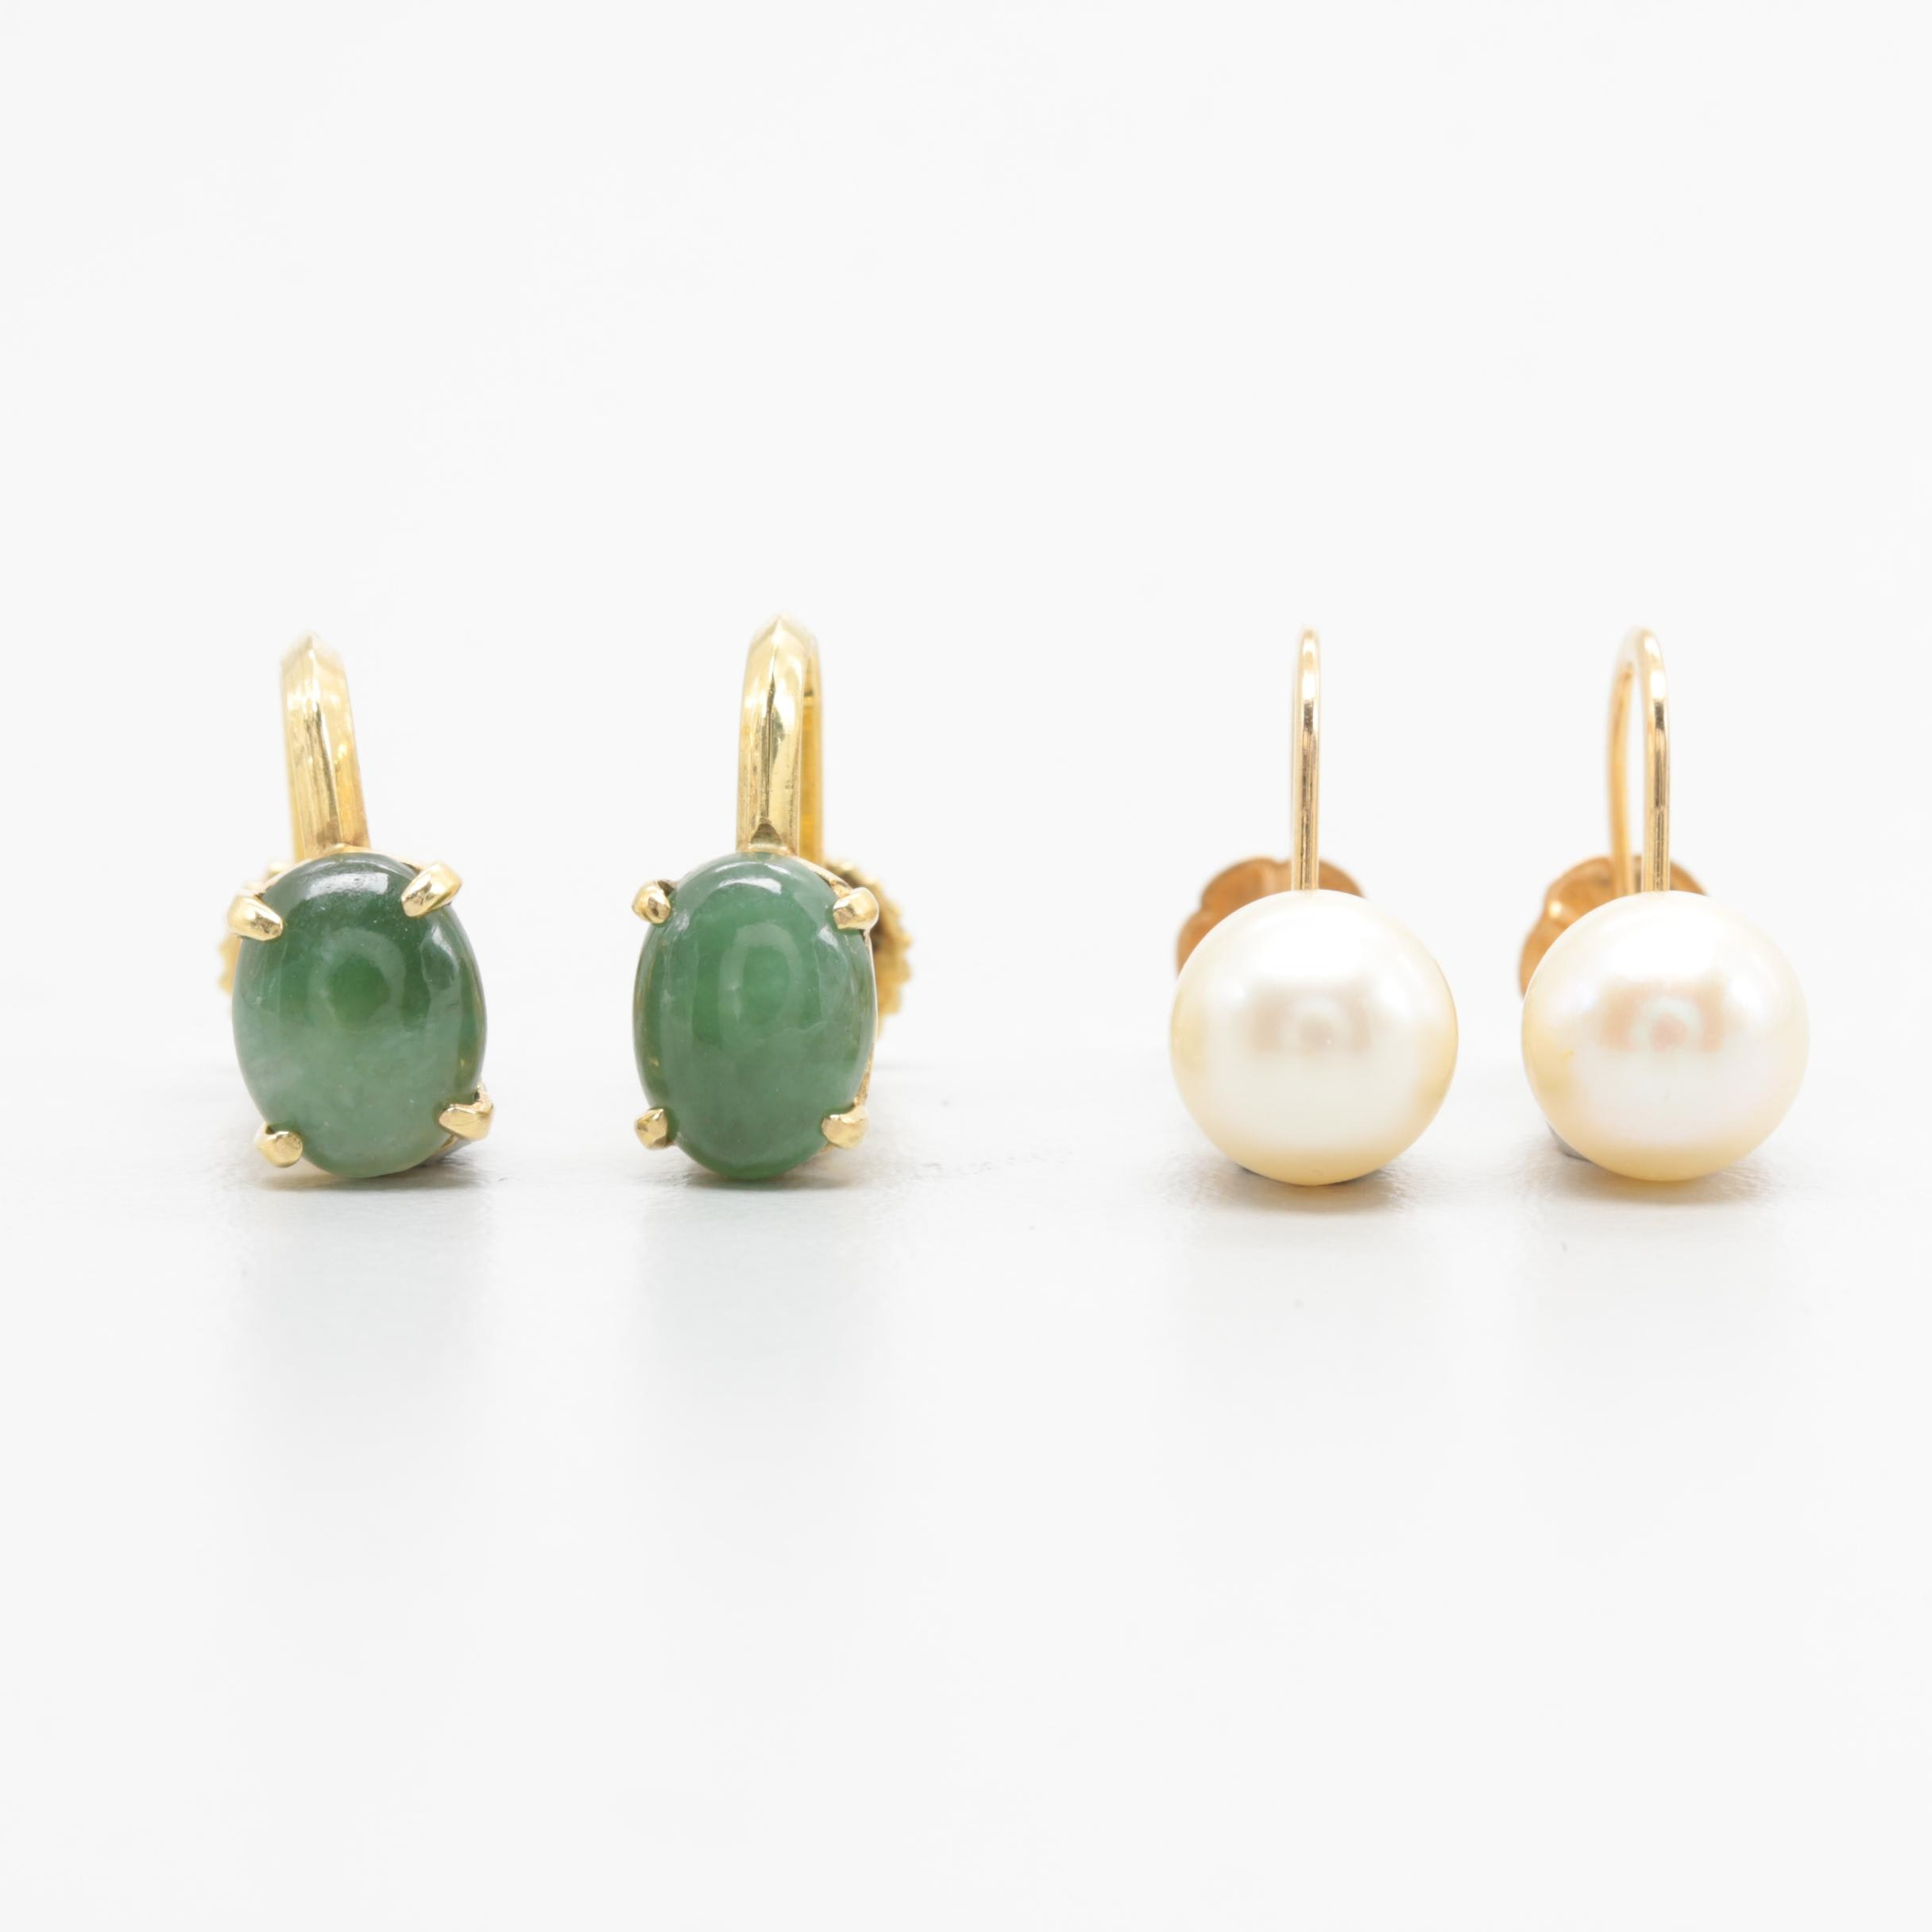 14K Yellow Gold Jadeite and Cultured Pearl Screw Back Earring Selection